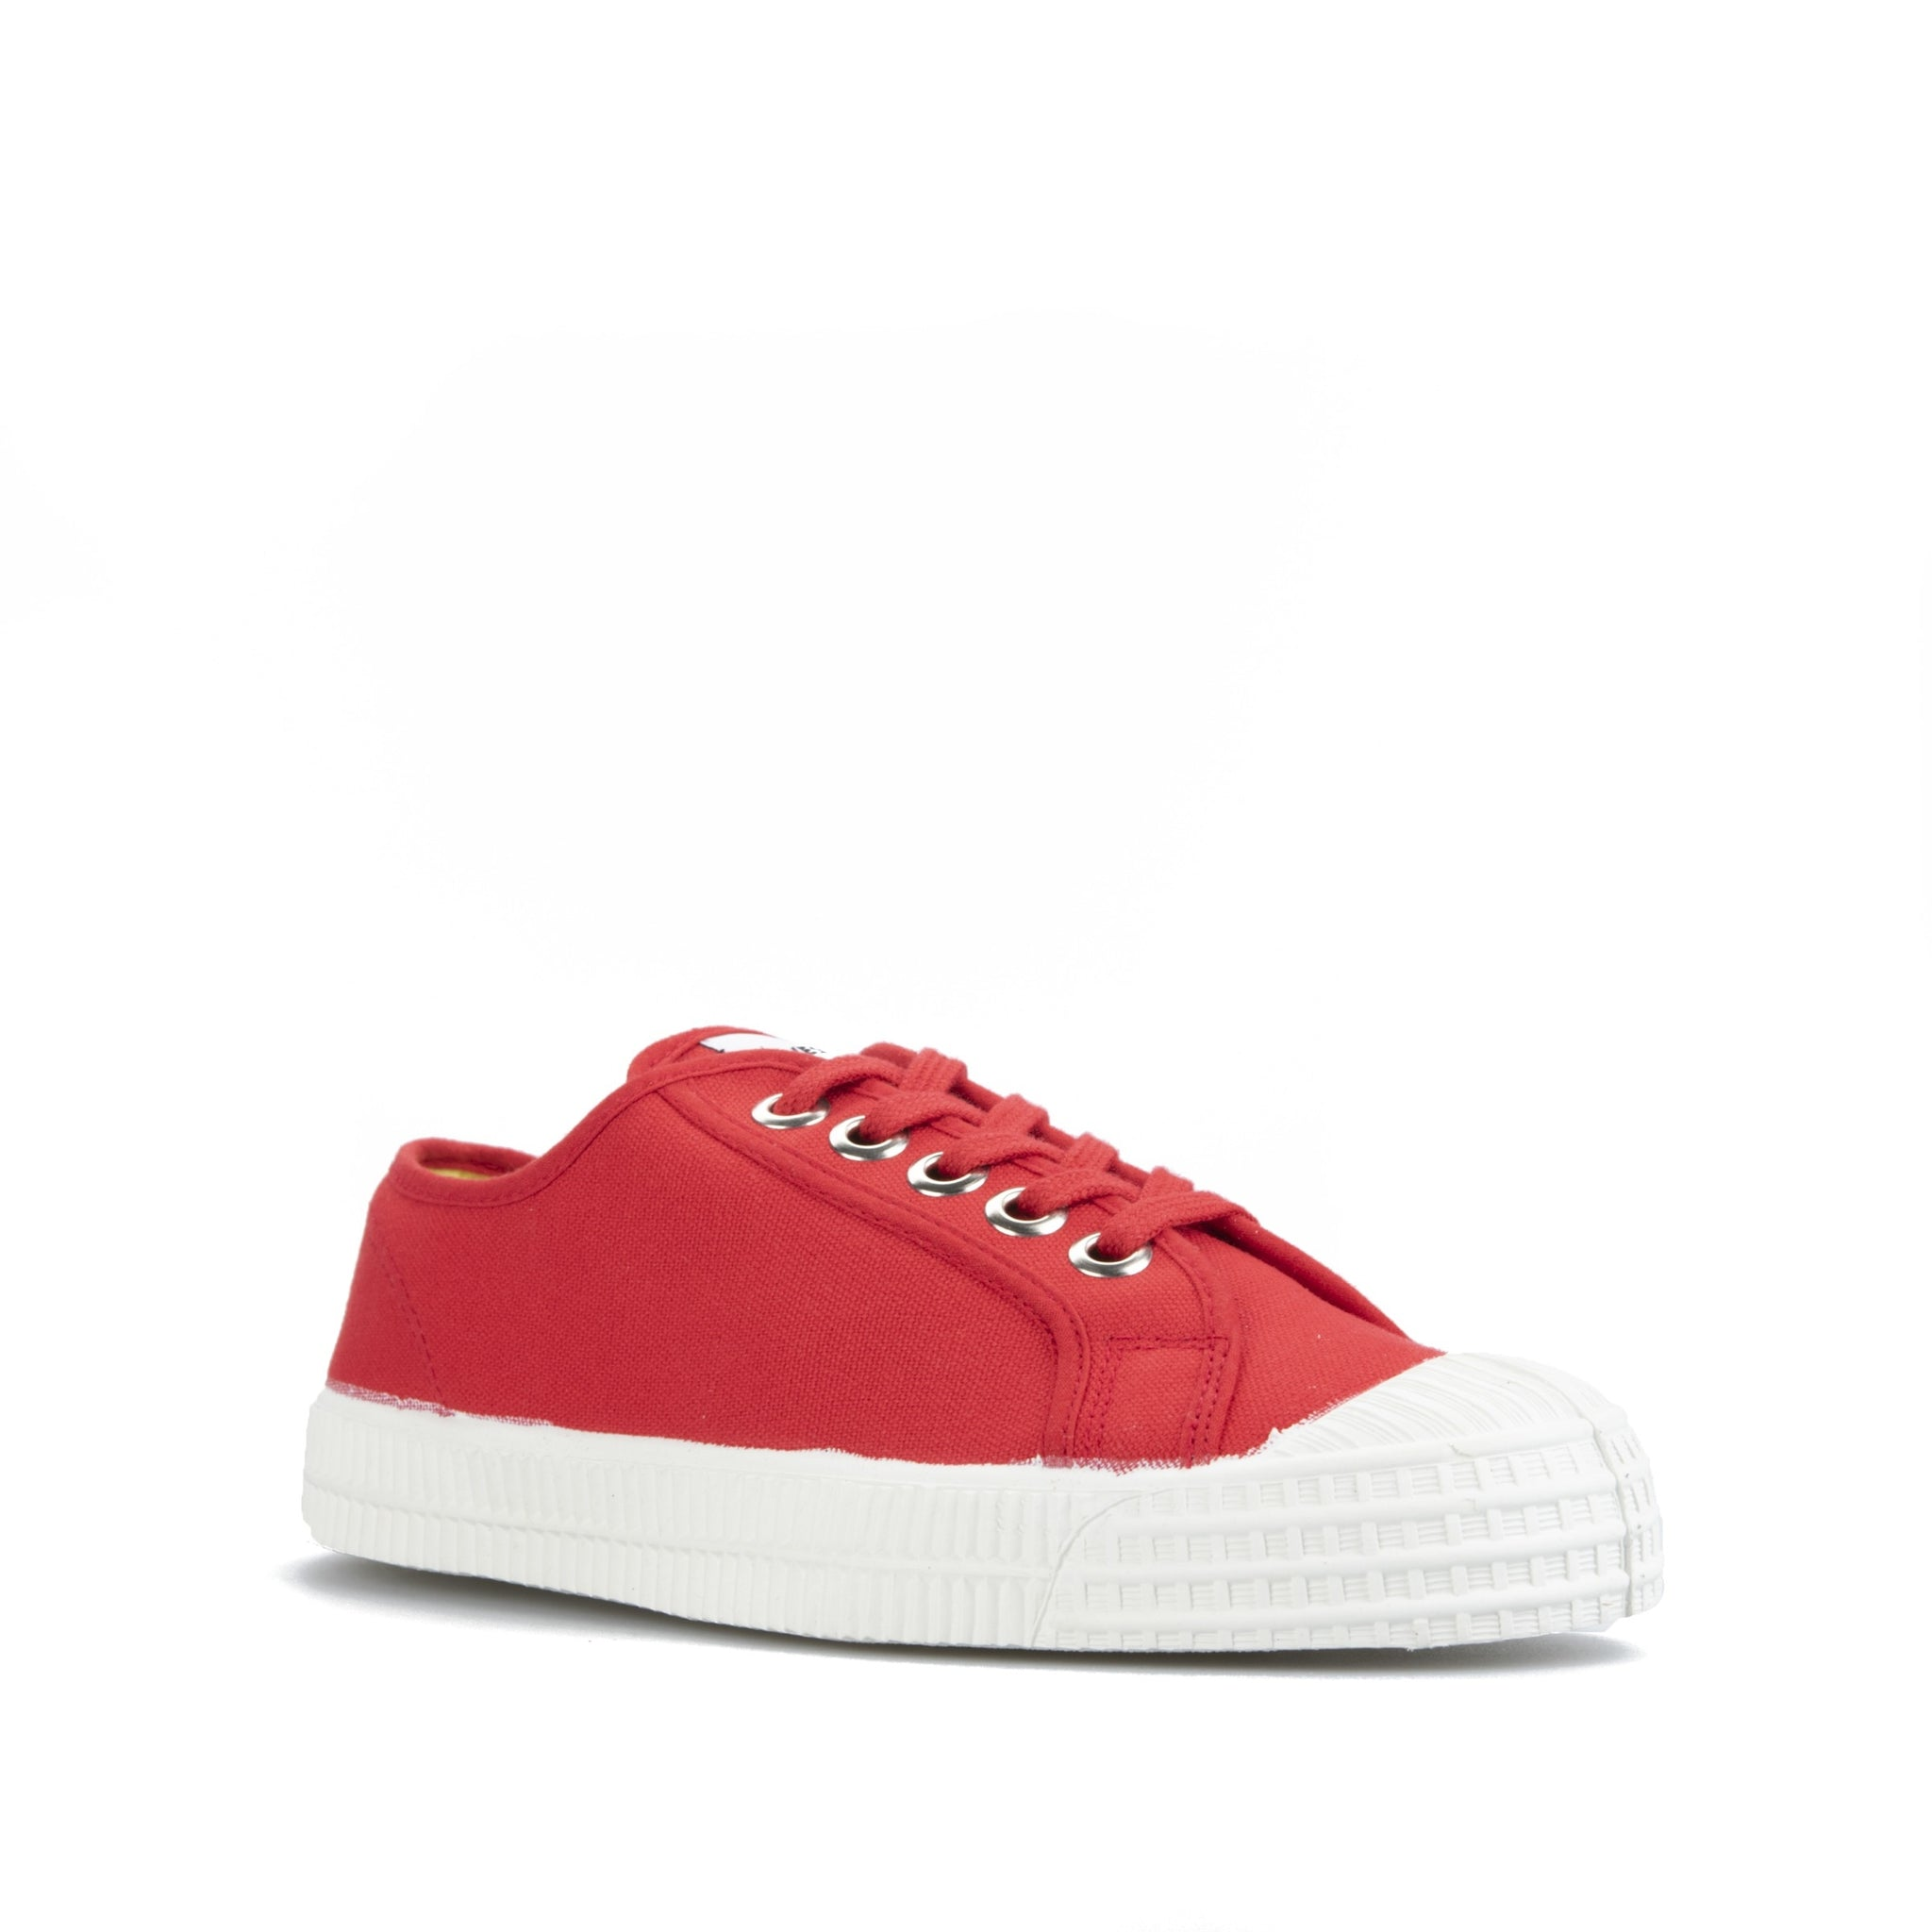 Star Master 33 Sneakers in Cherry